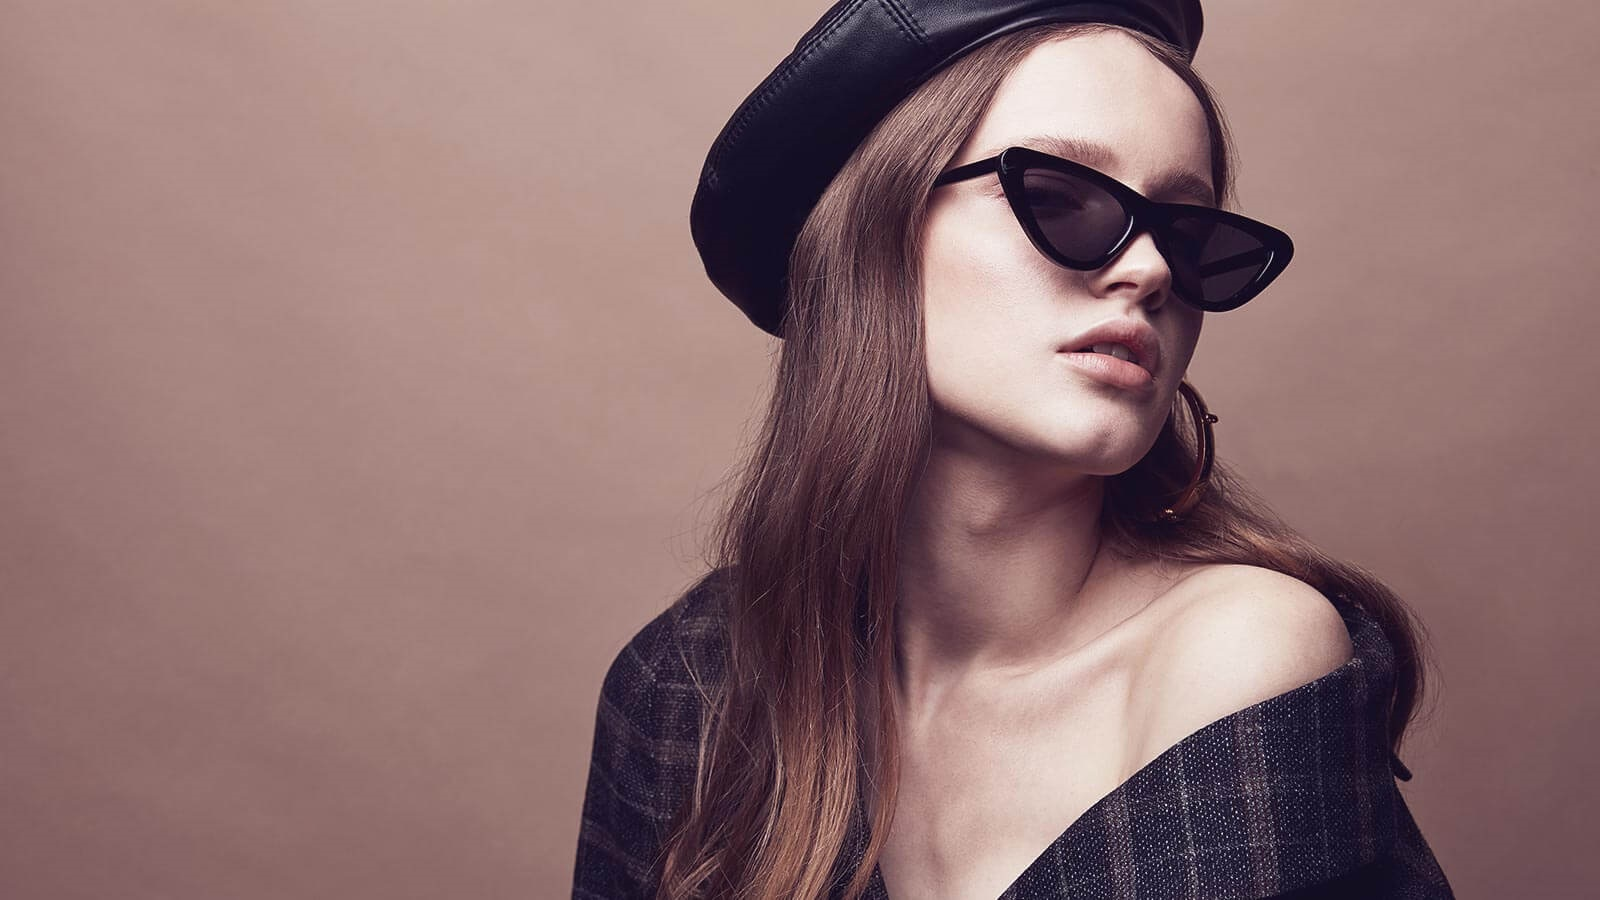 What makes Cat-eye Sunglasses an Ultimate Revenge Accessory?